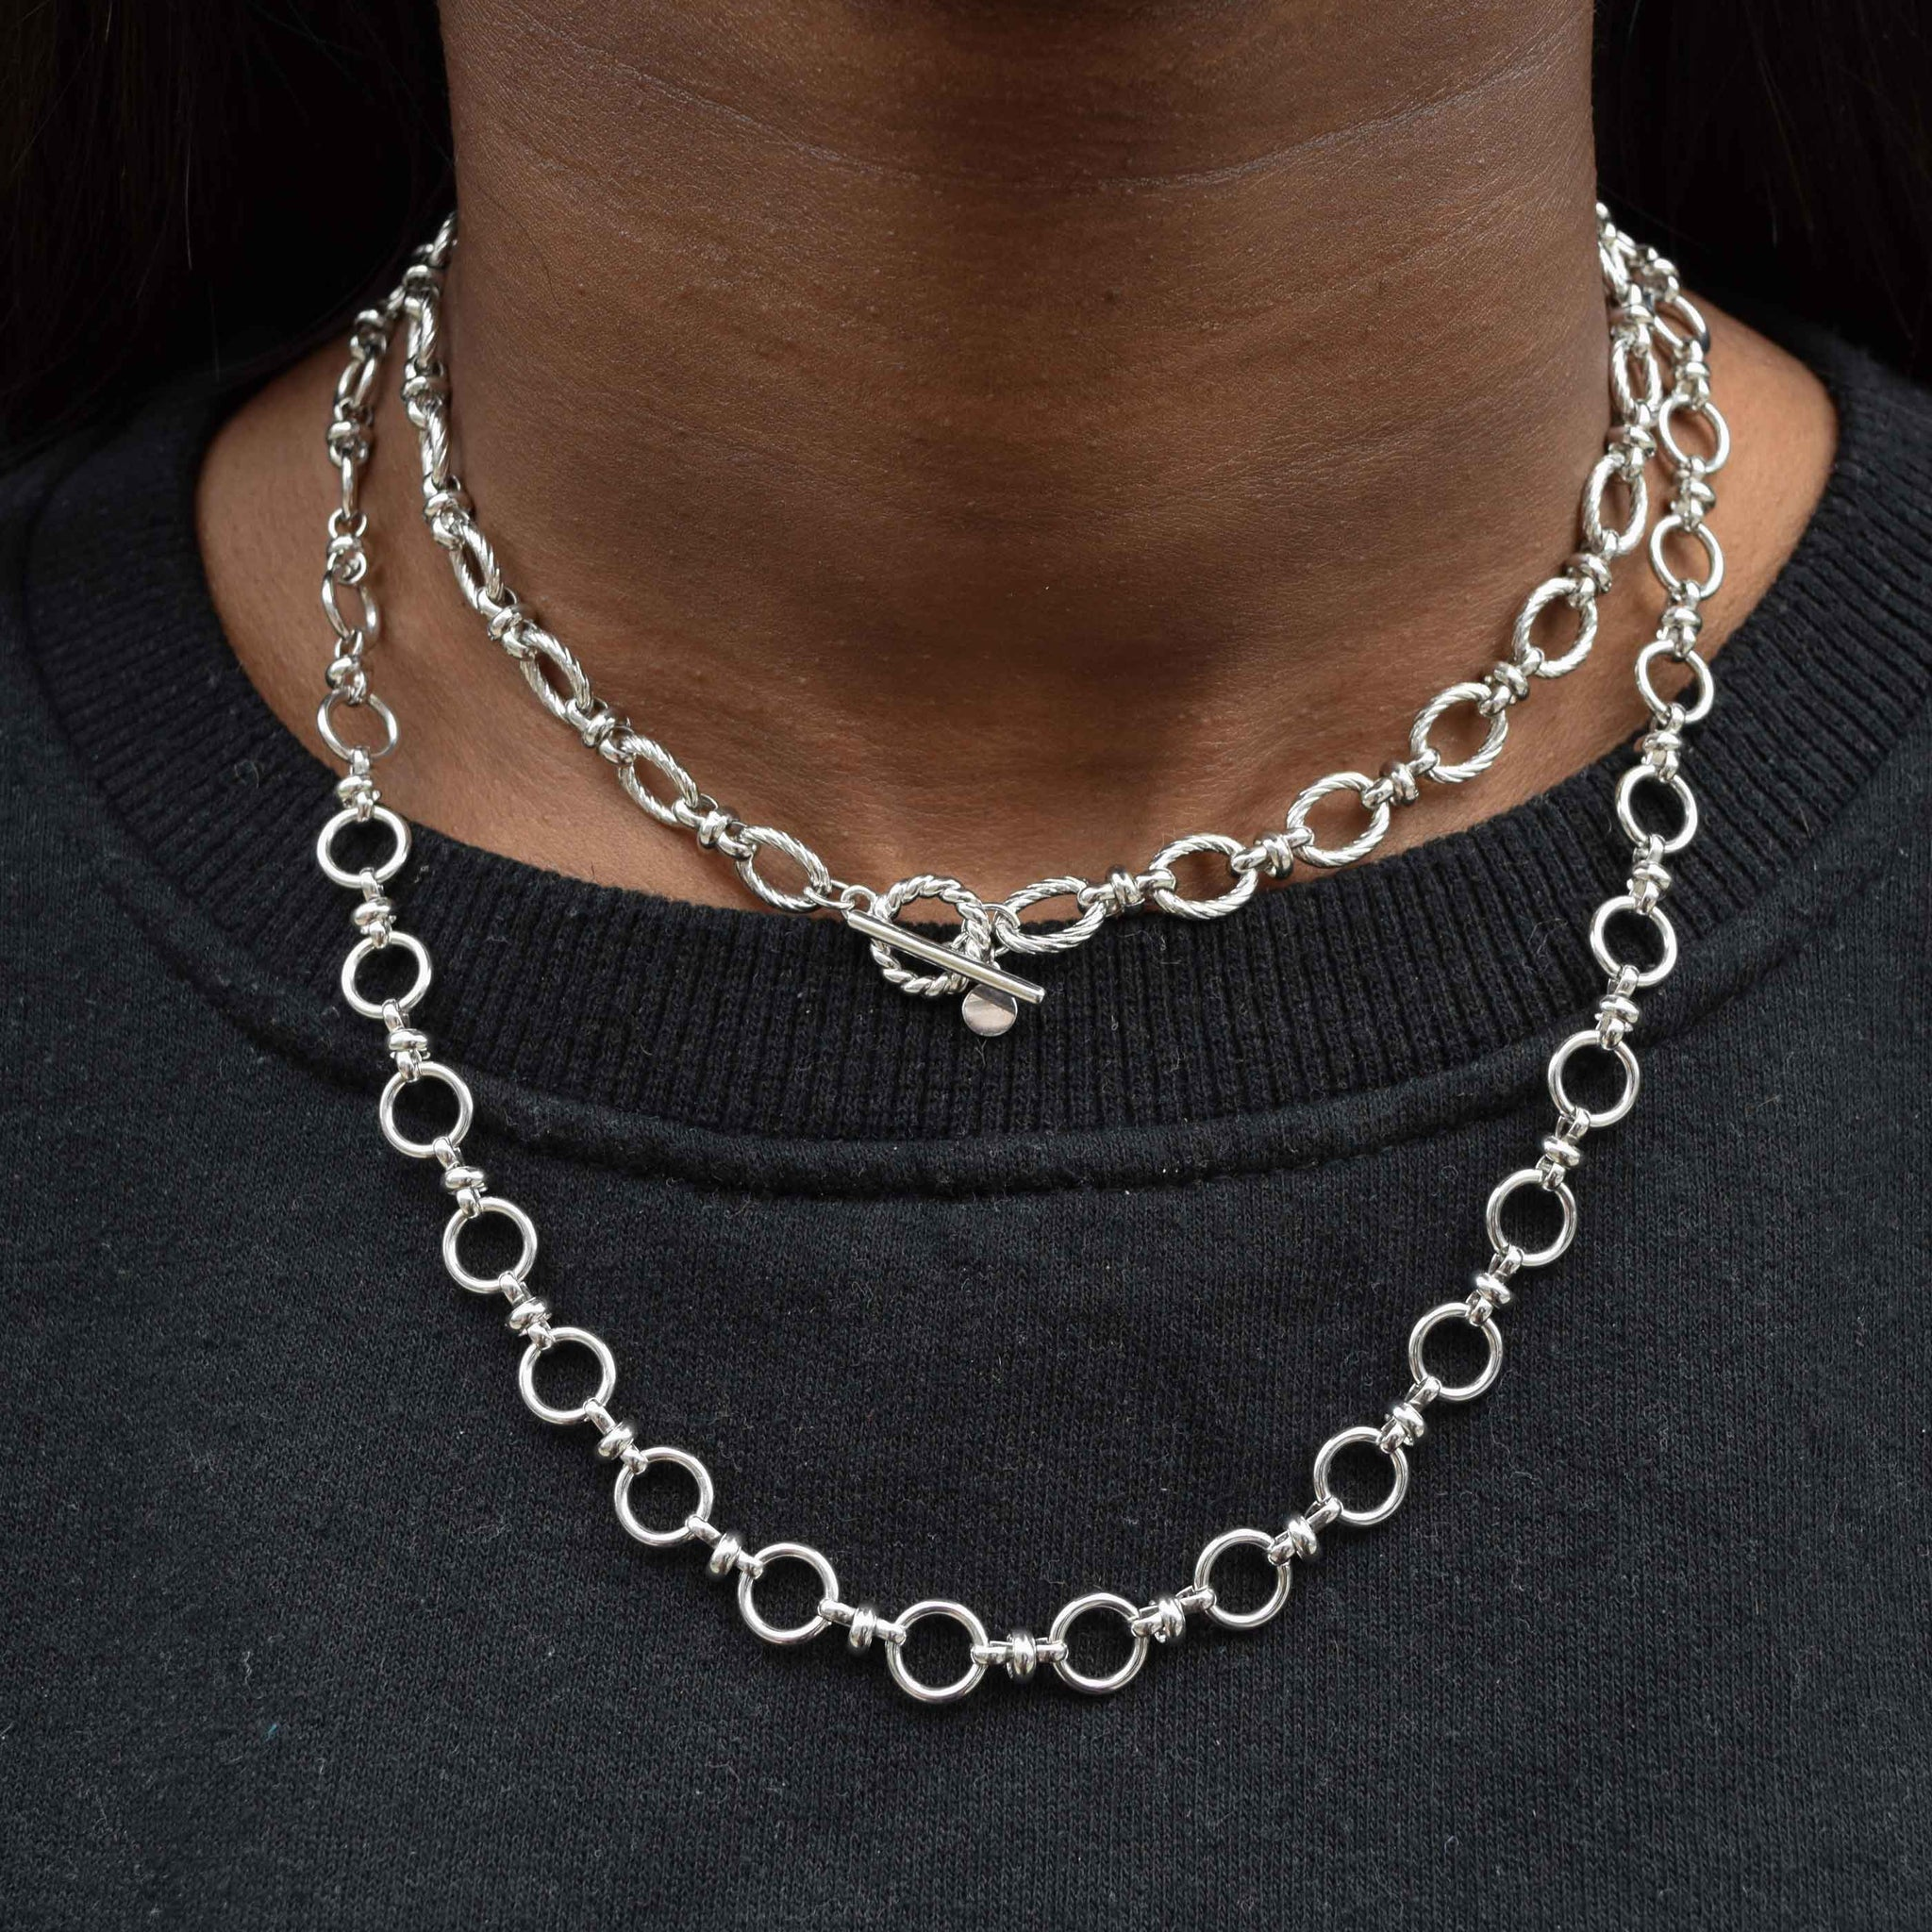 Textured Oval Link T-Bar Necklace in Silver